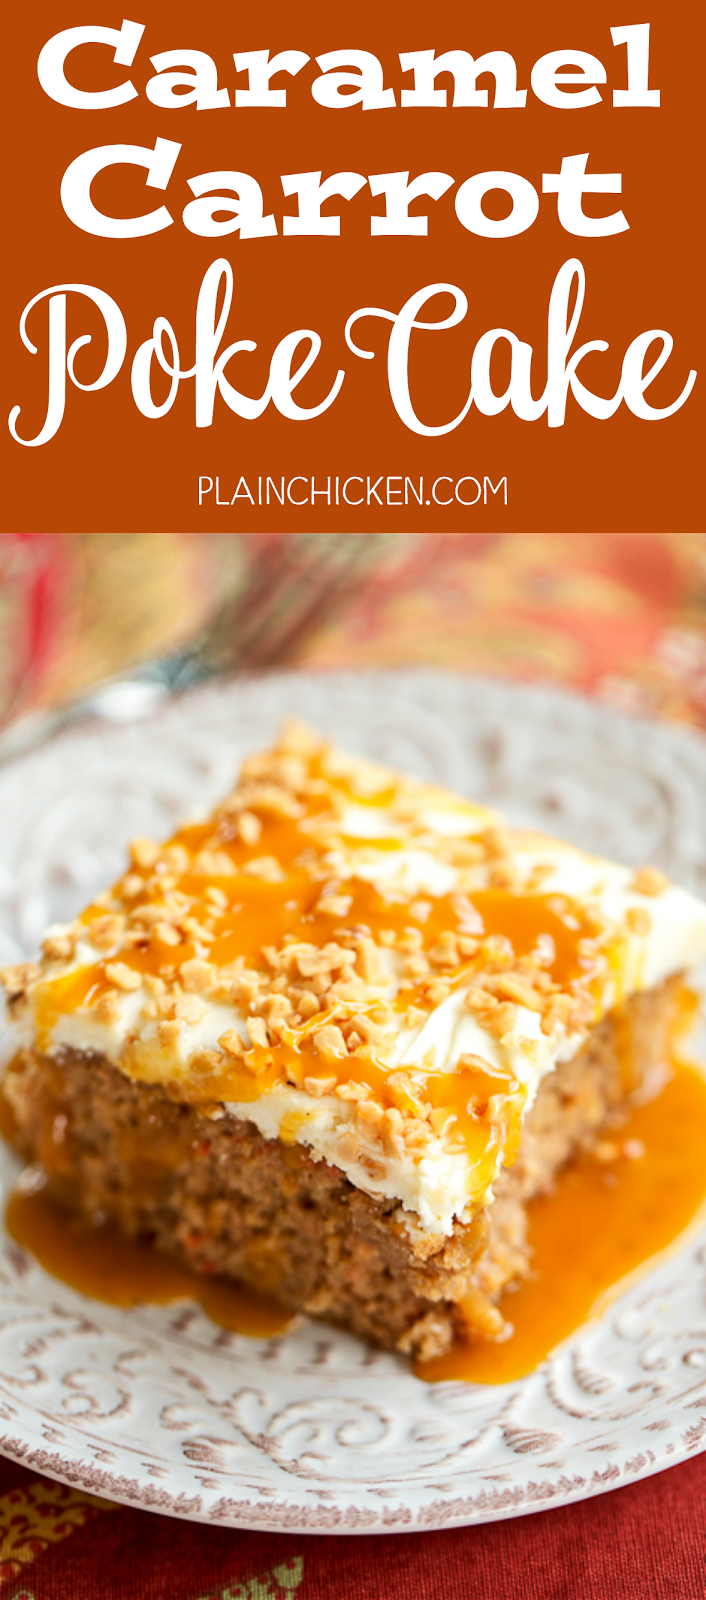 Caramel Carrot Poke Cake Soaked In Sweetened Condensed Milk And Topped